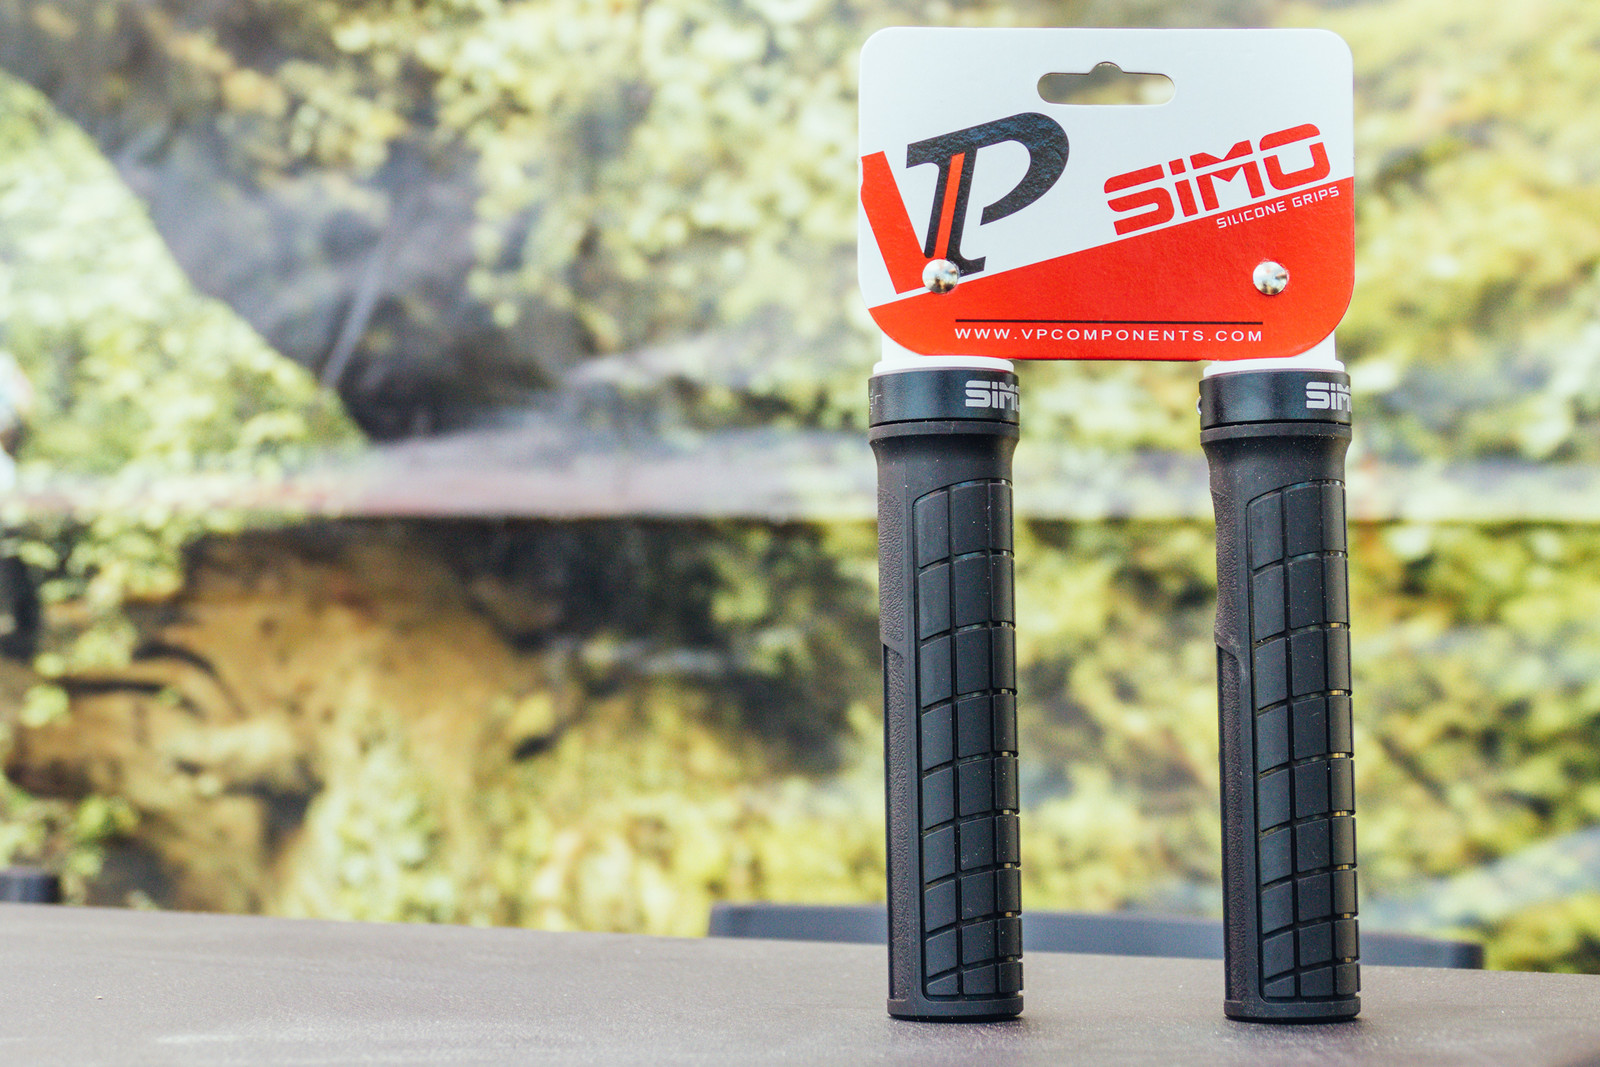 These Silicone Lock-On Grips from VP Components Offer Higher Friction and a Soft Feel - Sea Otter Classic